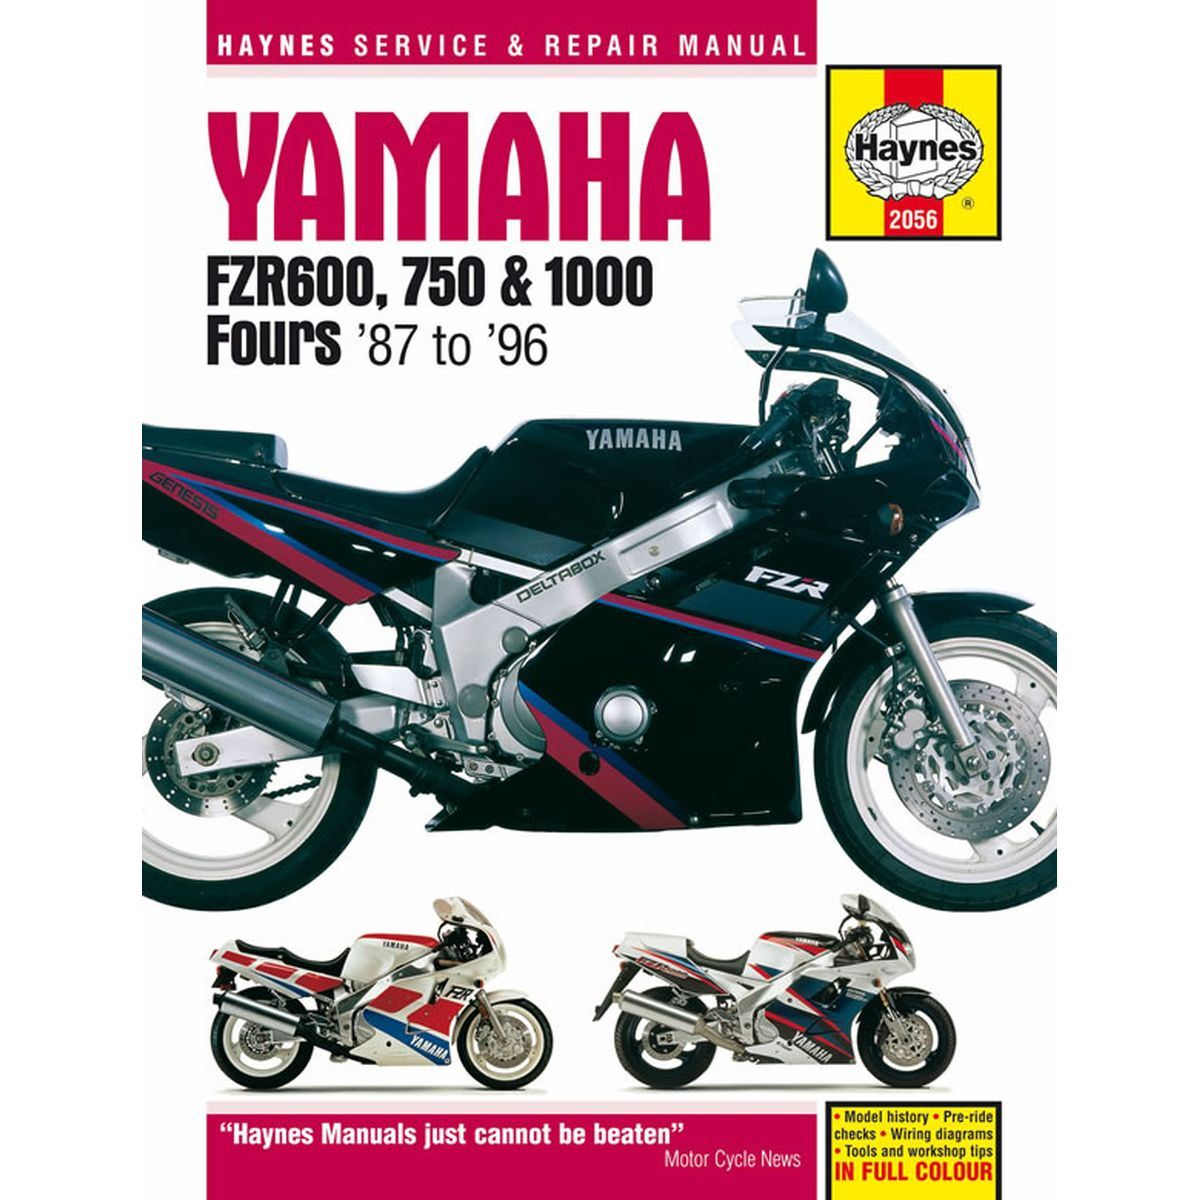 Manual Haynes For 1989 Yamaha Fzr 1000 R Exup 3lg1 Twin 89 Virago Wiring Diagram Image Is Loading